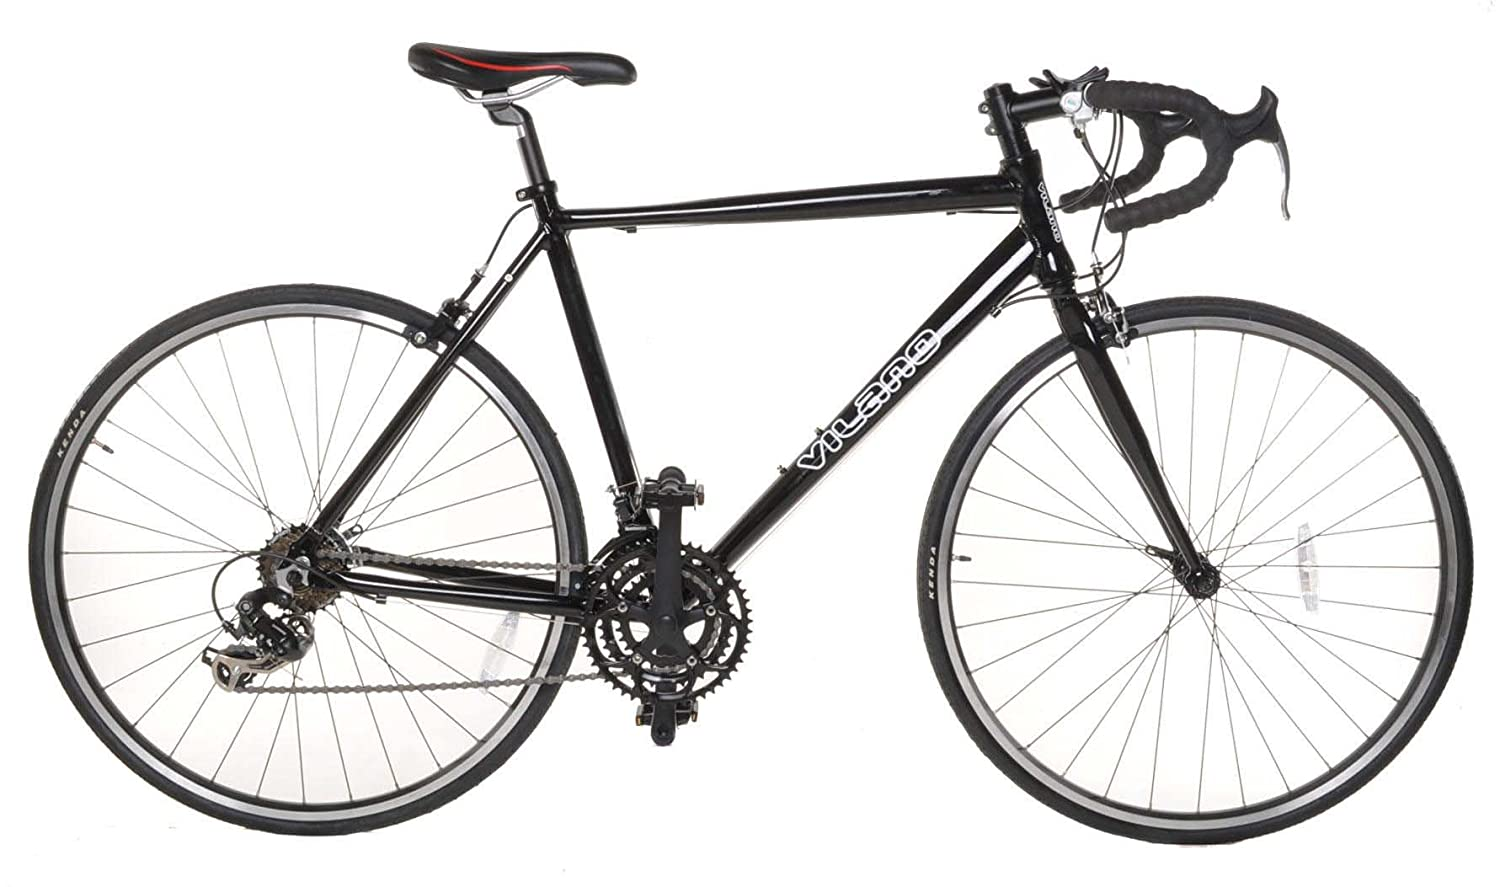 Vilano Aluminum Road Bike 21 Speed Shimano